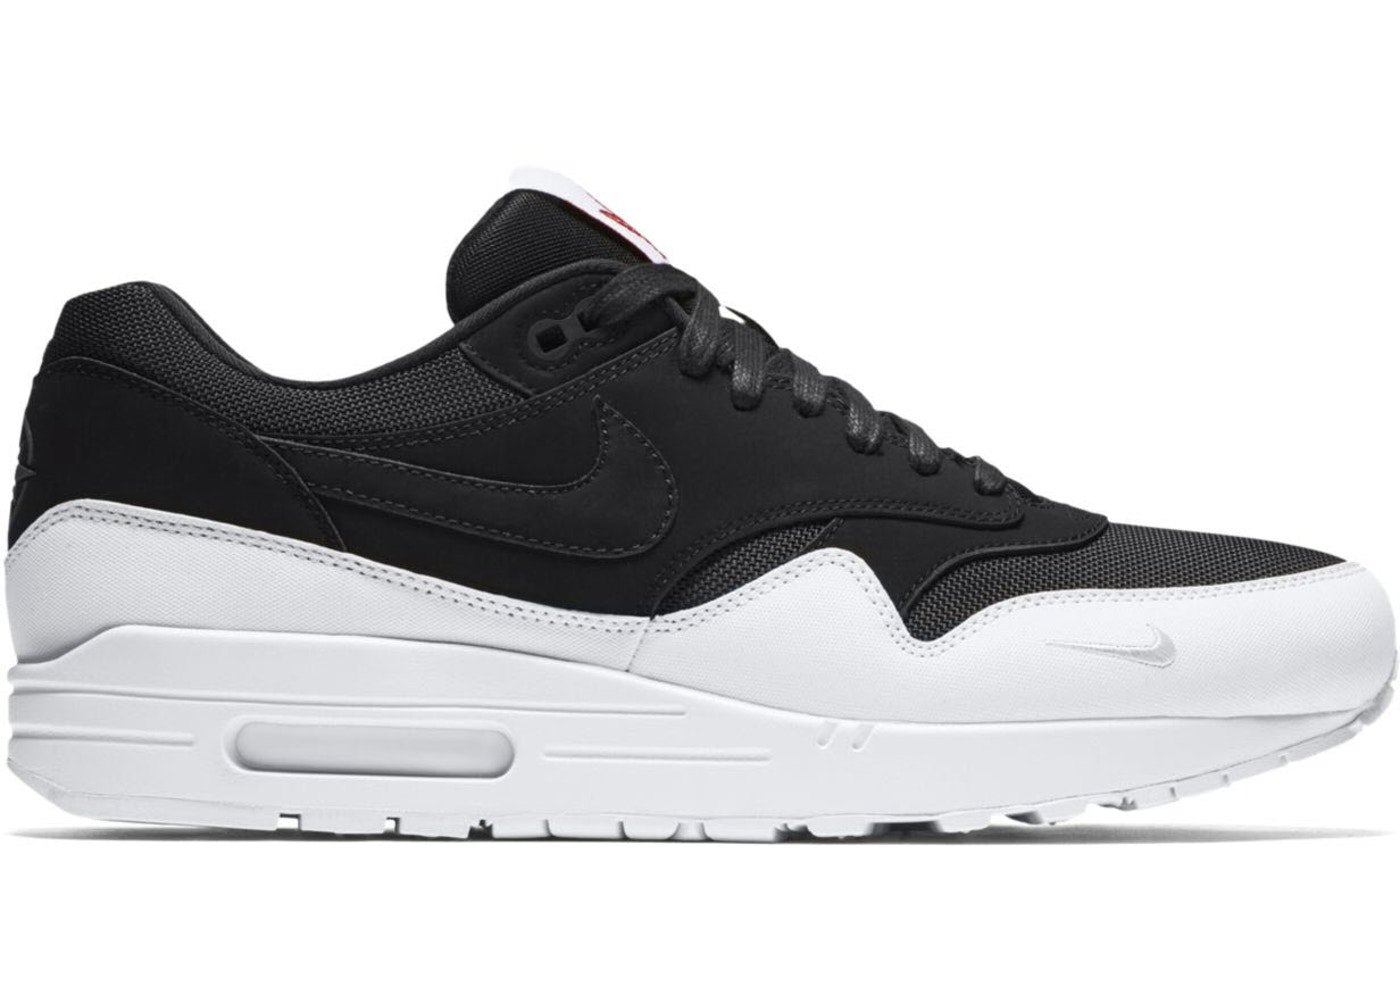 best loved 2e89a 61783 Air Max 1 Canada the 6 - 704997-006